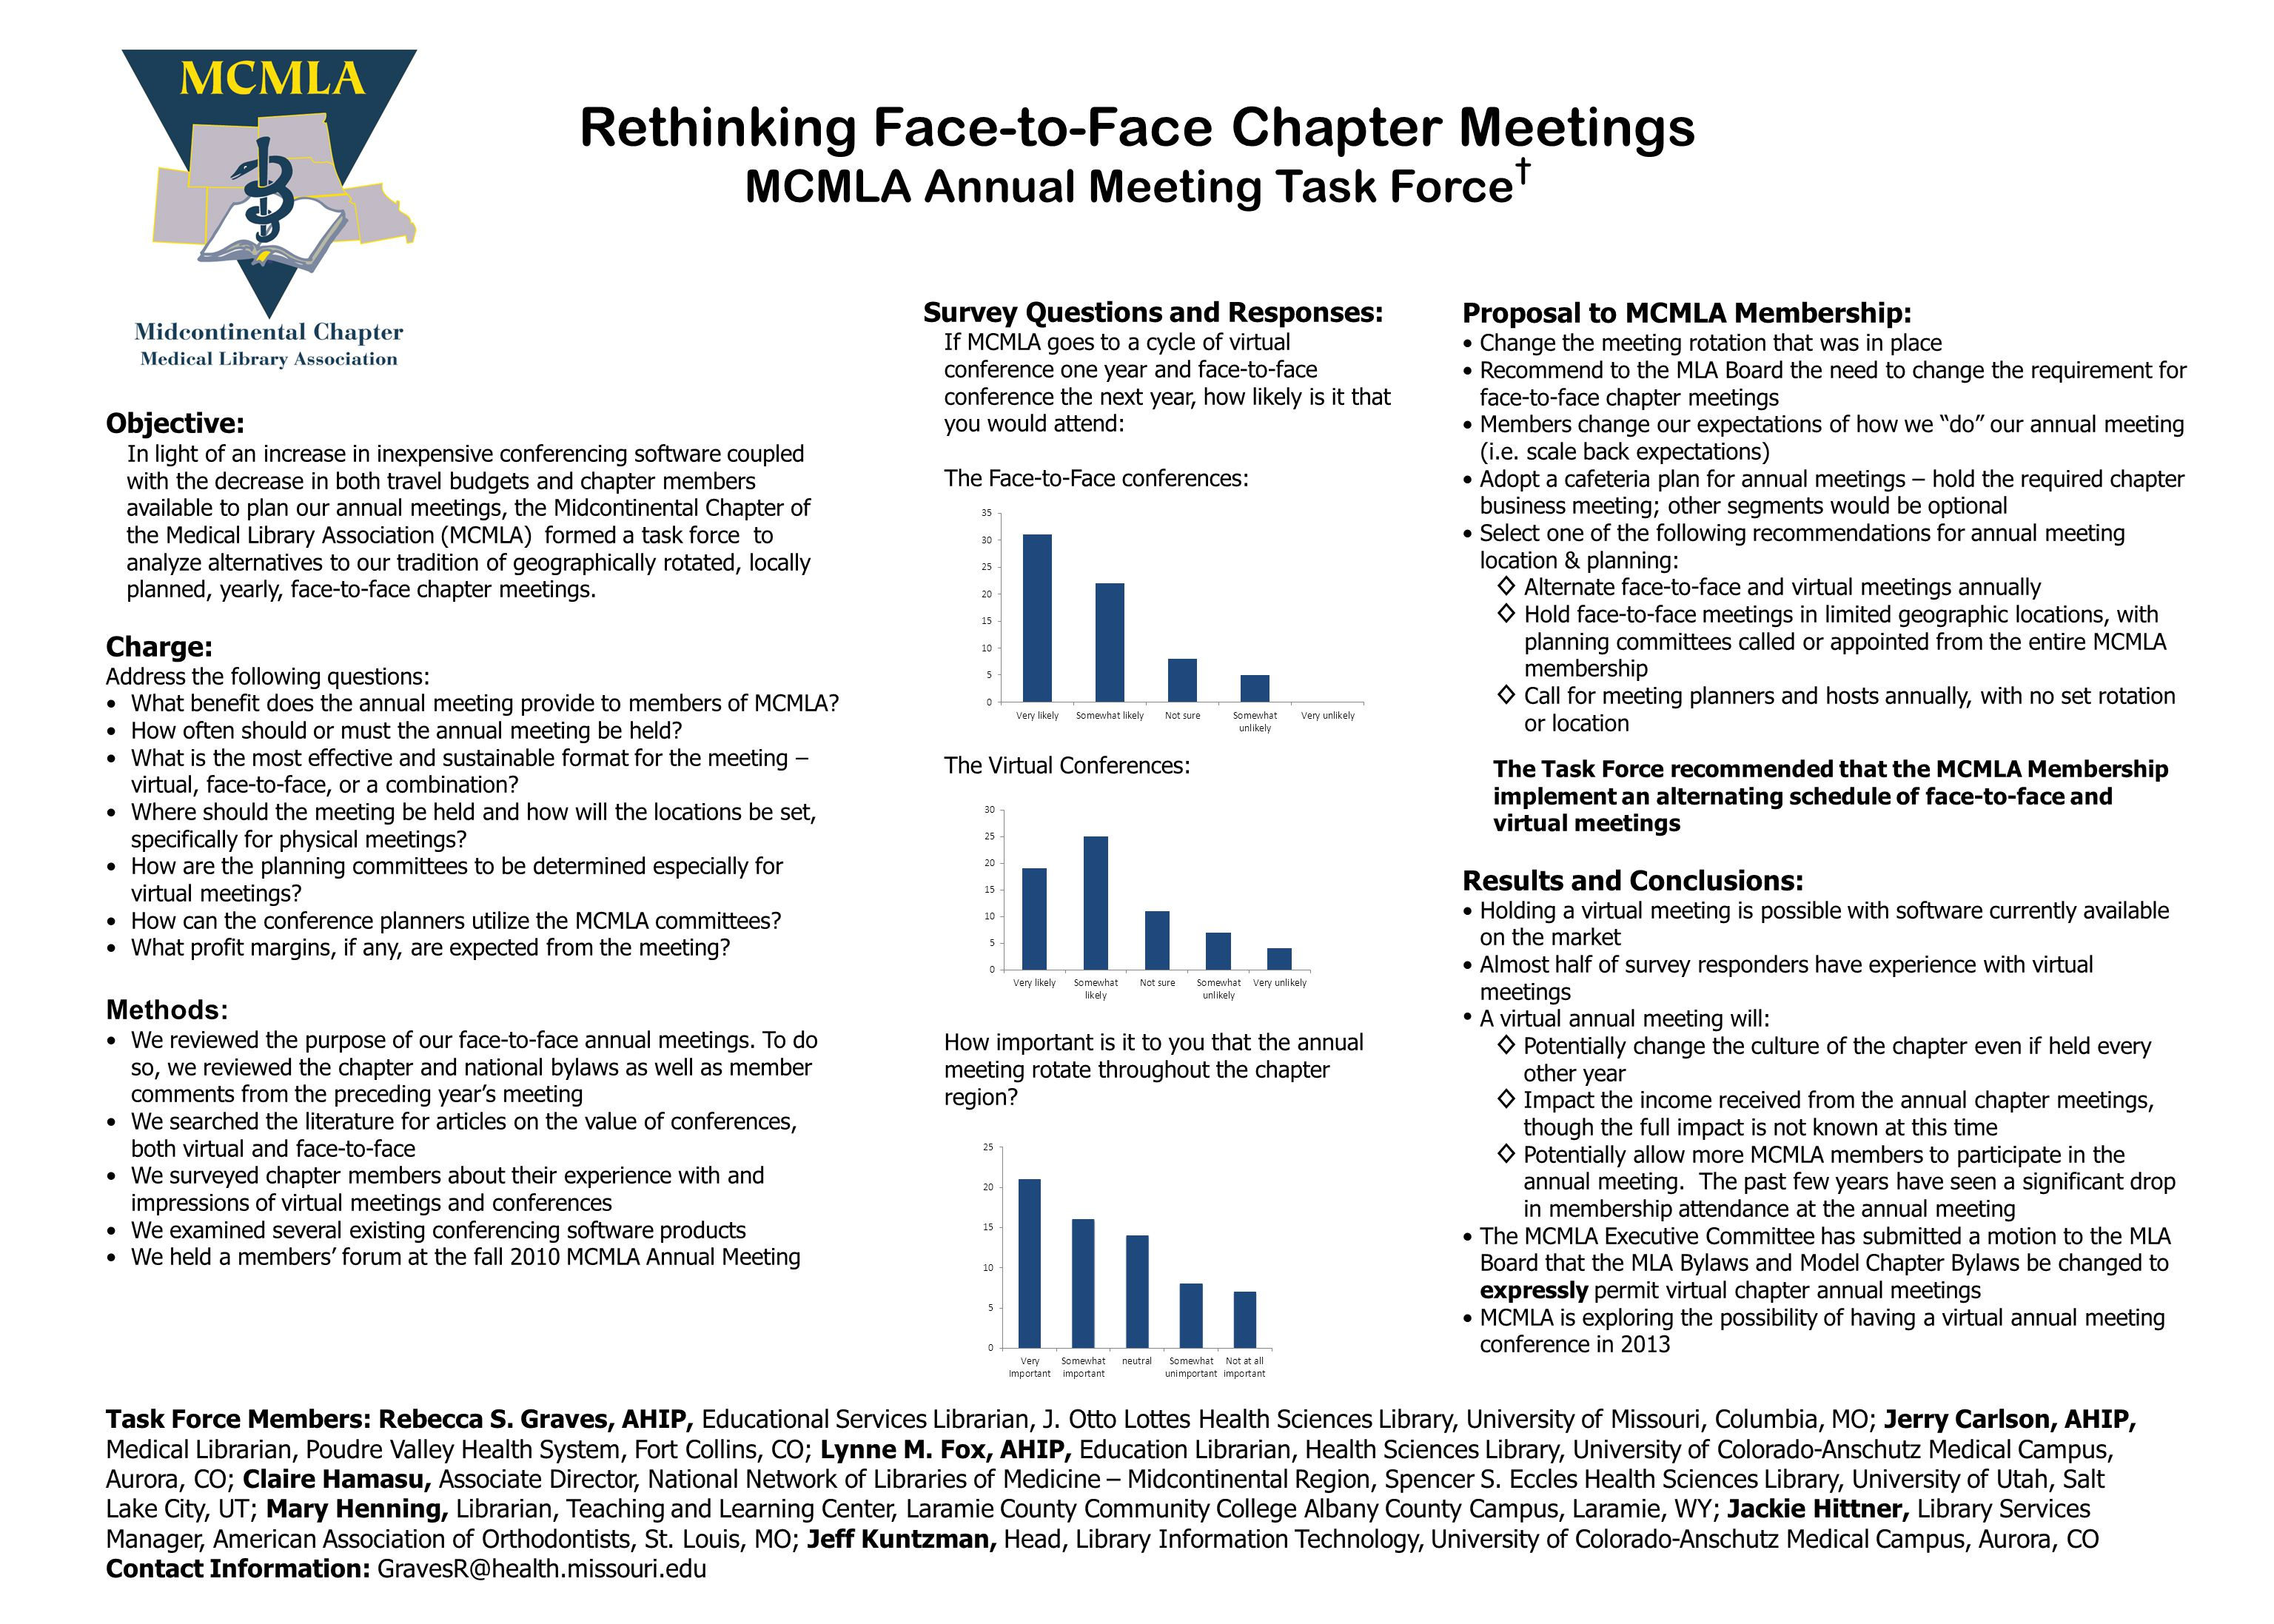 Proposal to MCMLA Membership: Change the meeting rotation that was in place Recommend to the MLA Board the need to change the requirement for face-to-face chapter meetings Members change our expectations of how we do our annual meeting (i.e.